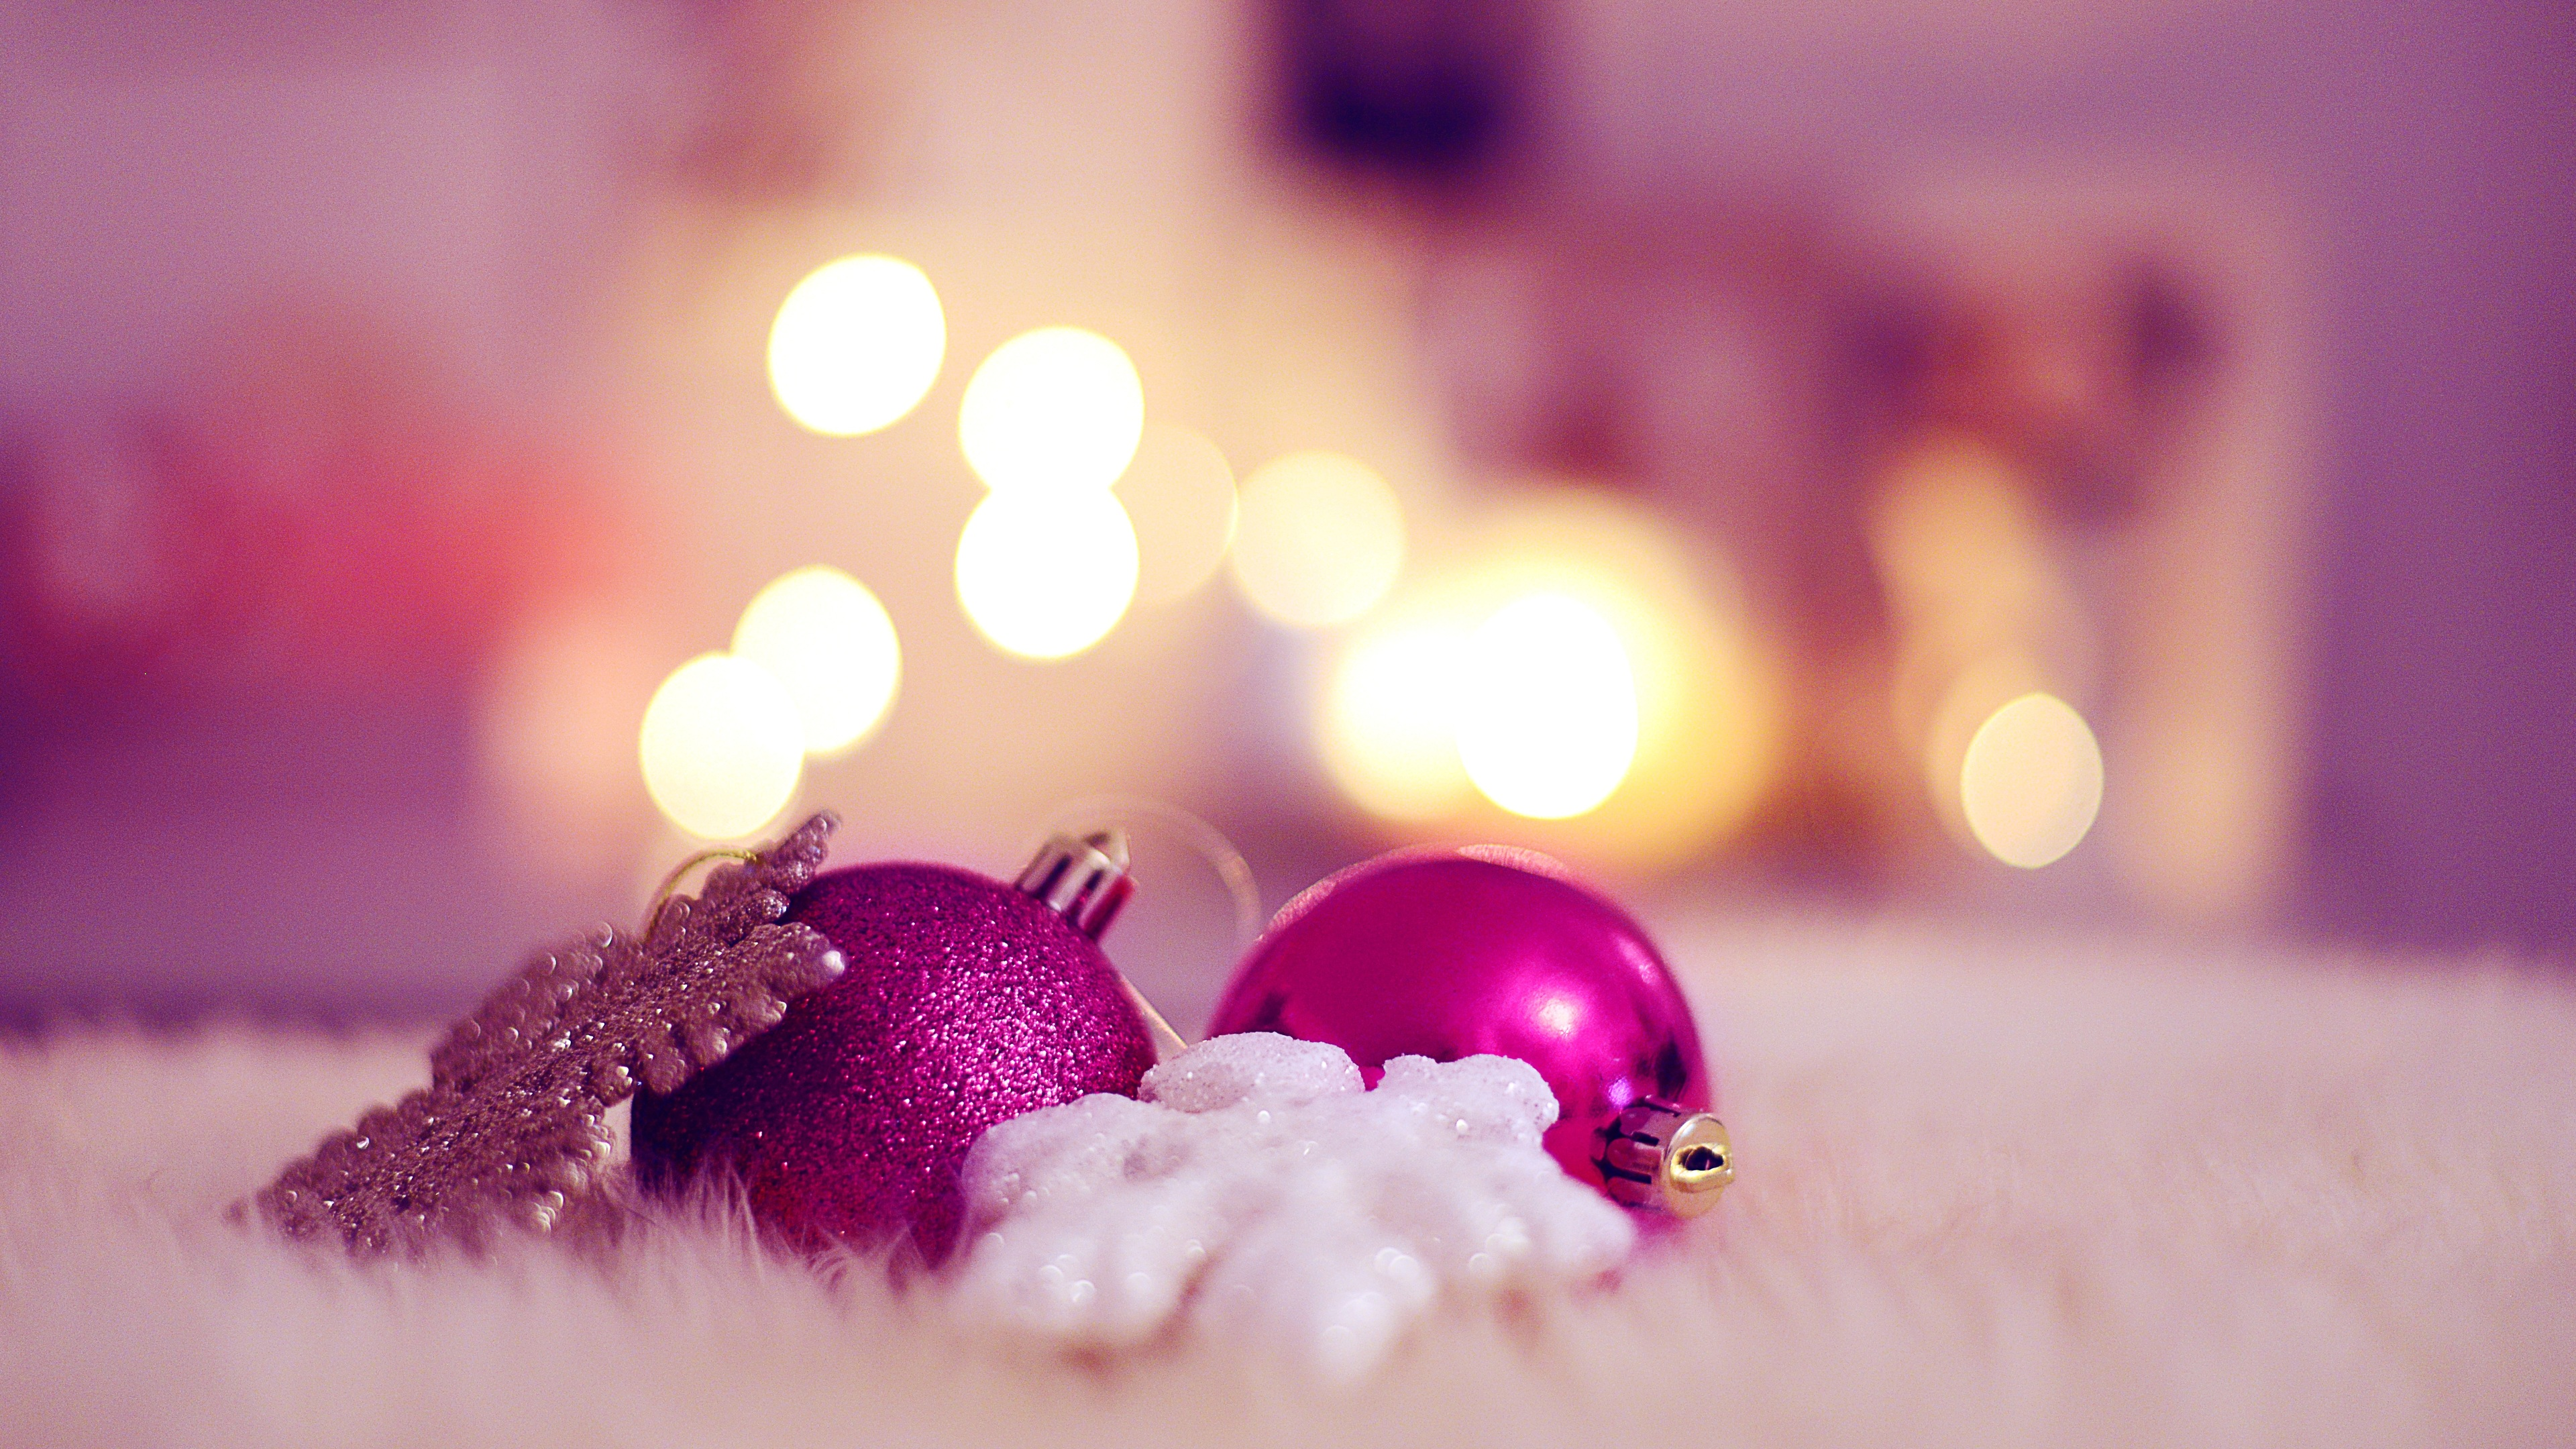 christmas bells ultra 4k 1543946544 - Christmas Bells Ultra 4k - pink wallpapers, holidays wallpapers, hd-wallpapers, christmas wallpapers, celebrations wallpapers, bells wallpapers, 5k wallpapers, 4k-wallpapers